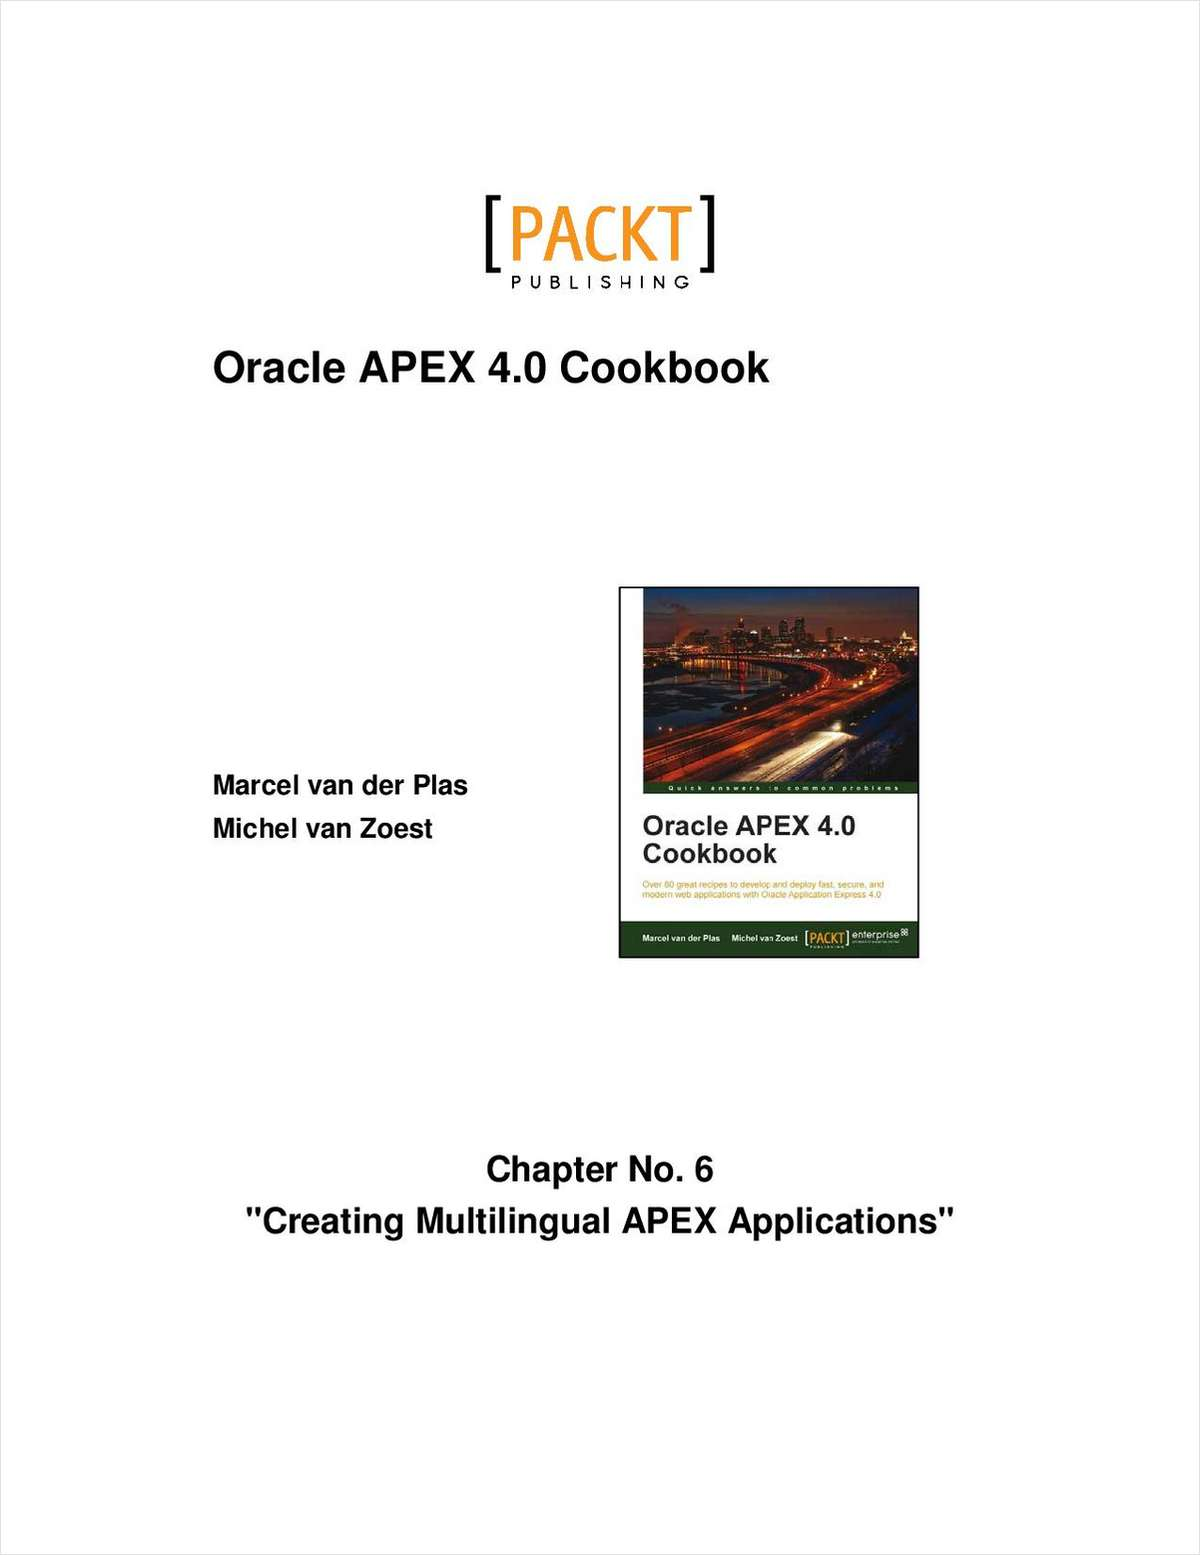 Creating Multilingual APEX Applications -- Free 24 Page Chapter